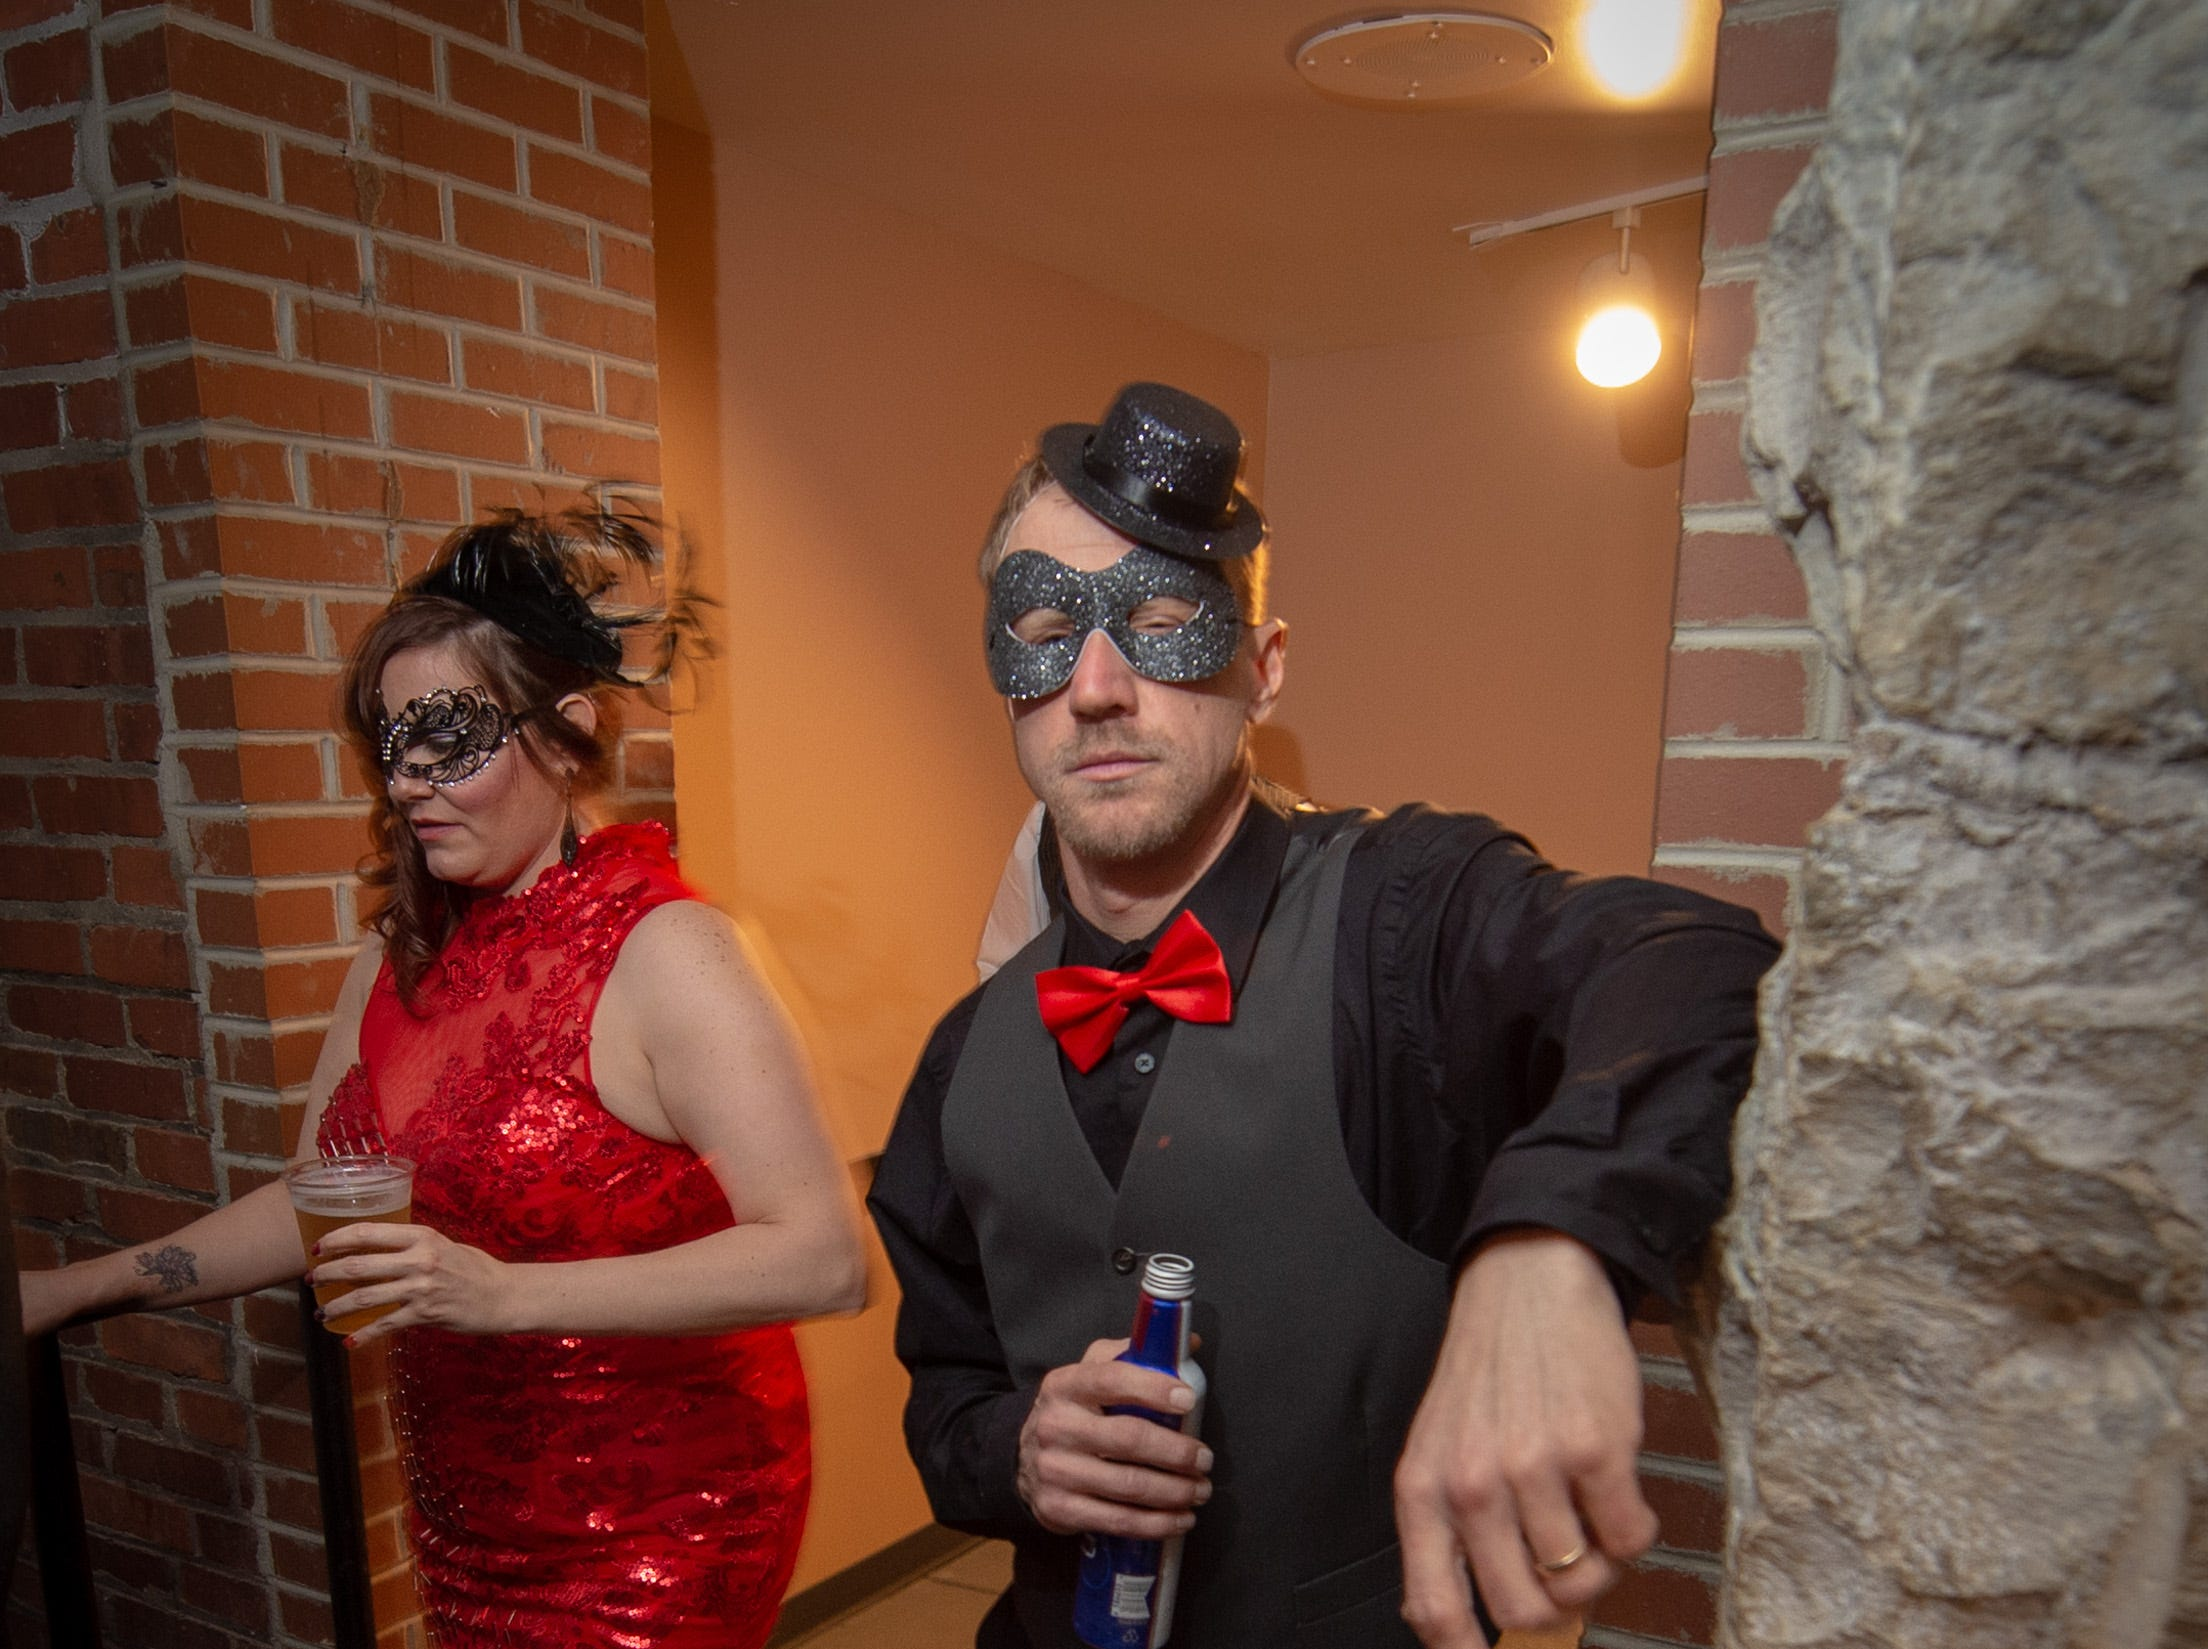 Guests mingle Monday, Dec. 31, 2018, at The 12th Annual Indy Masquerade held at Union Station in Indianapolis.